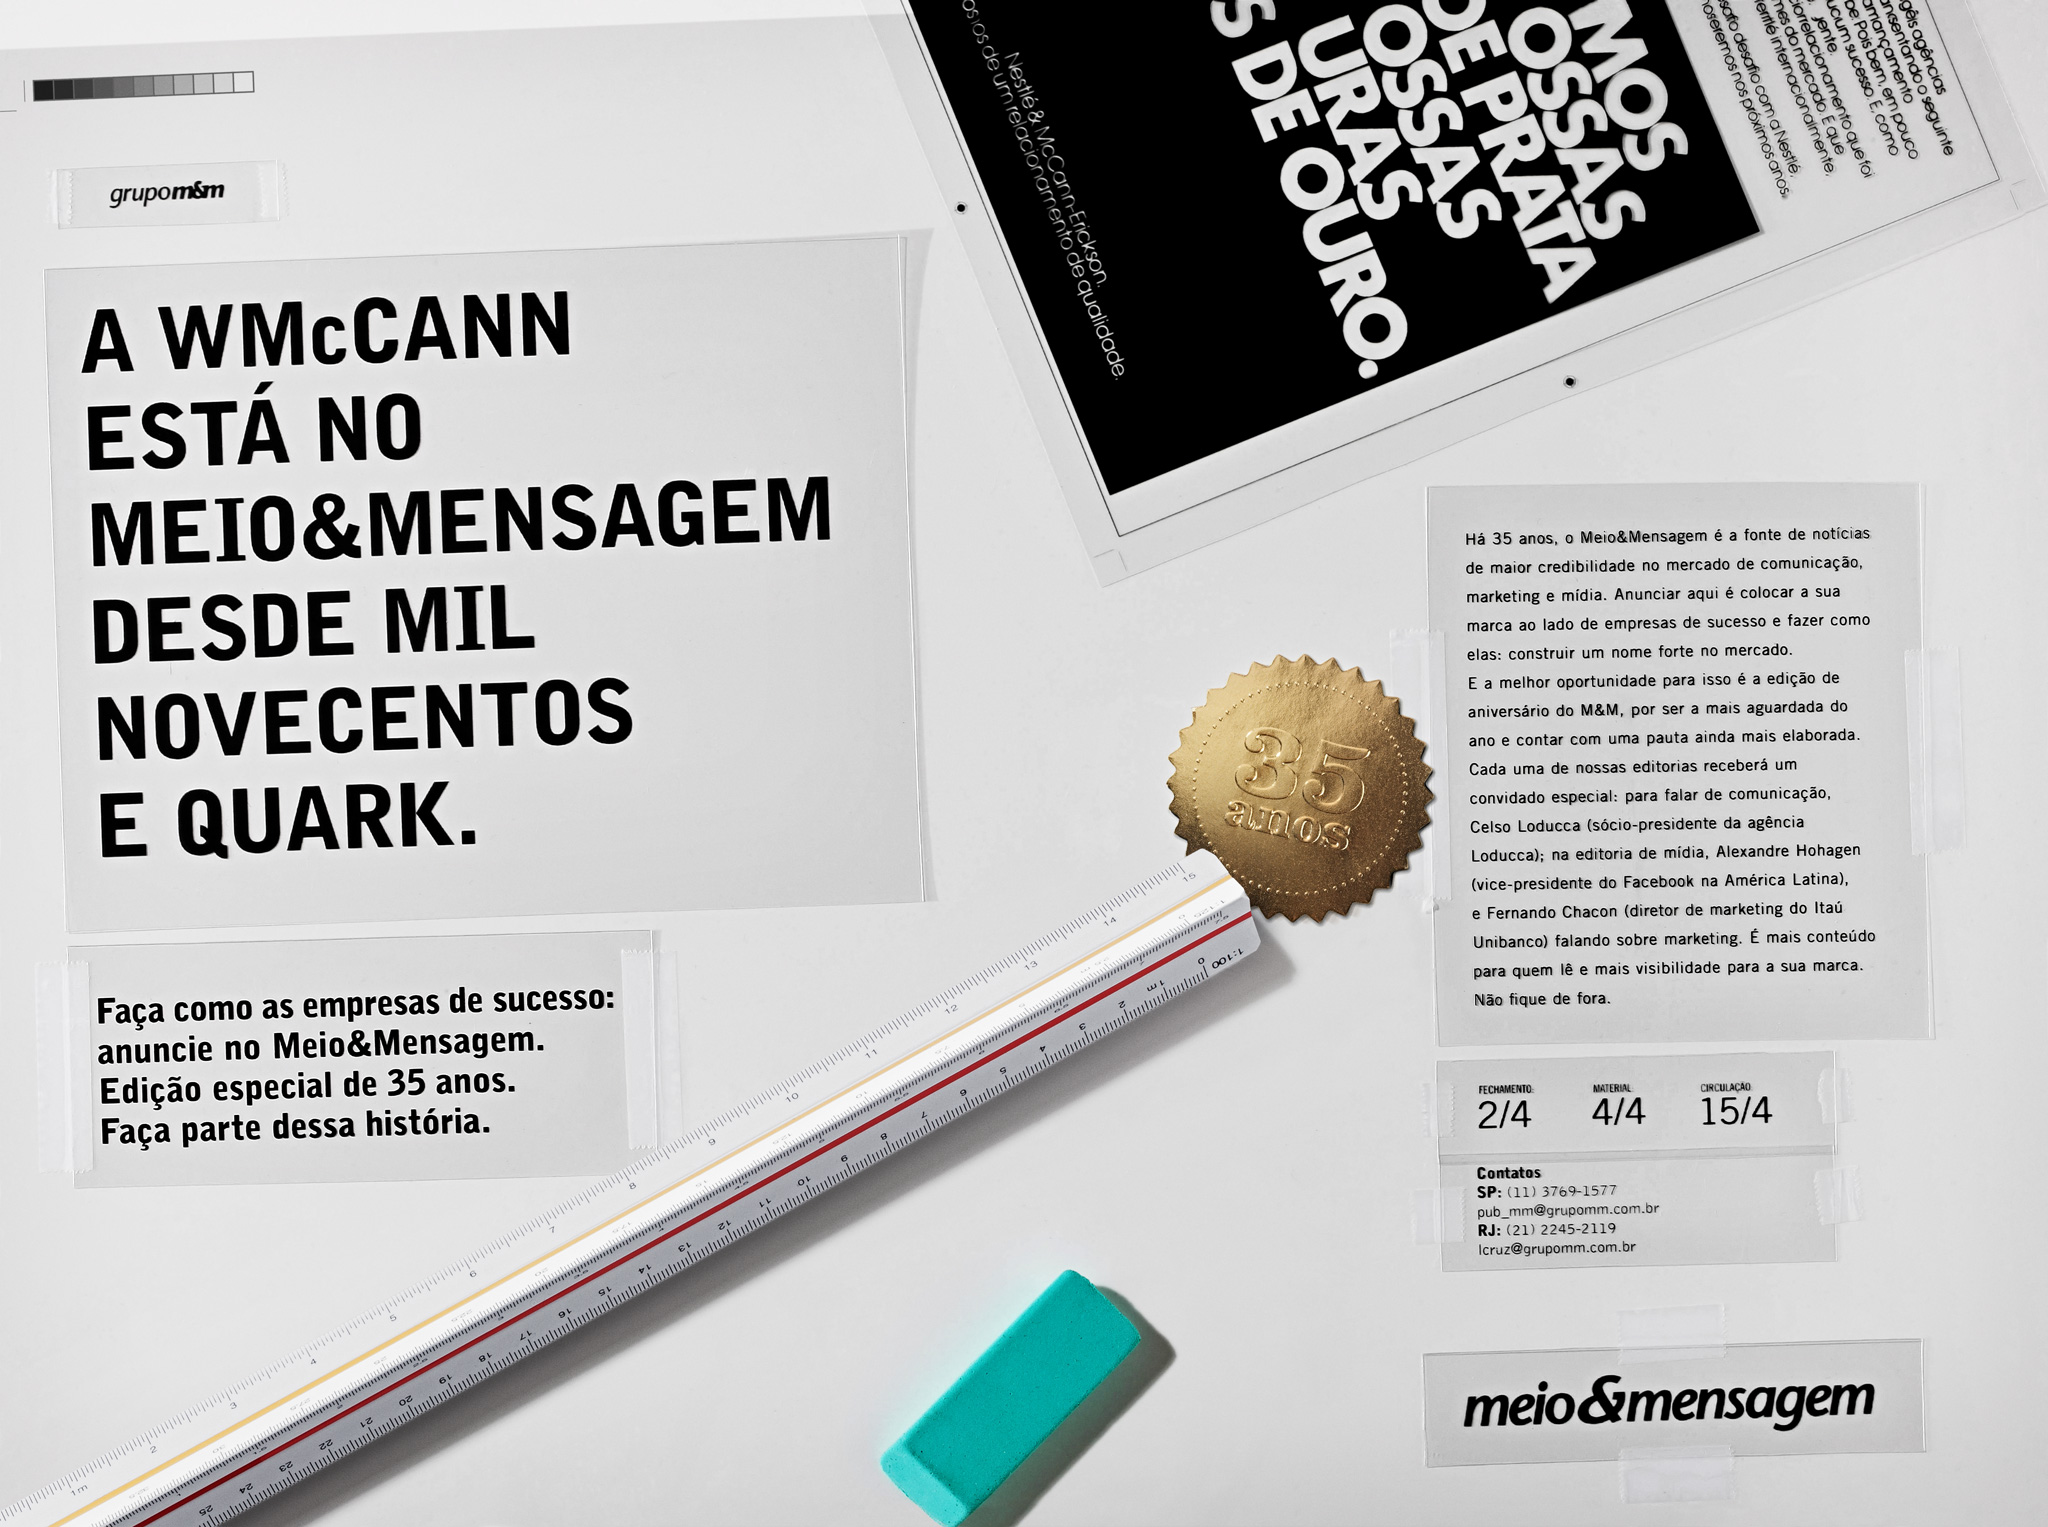 W/McCann is on meio&mensagem since one thousand nine hundred and Quark.